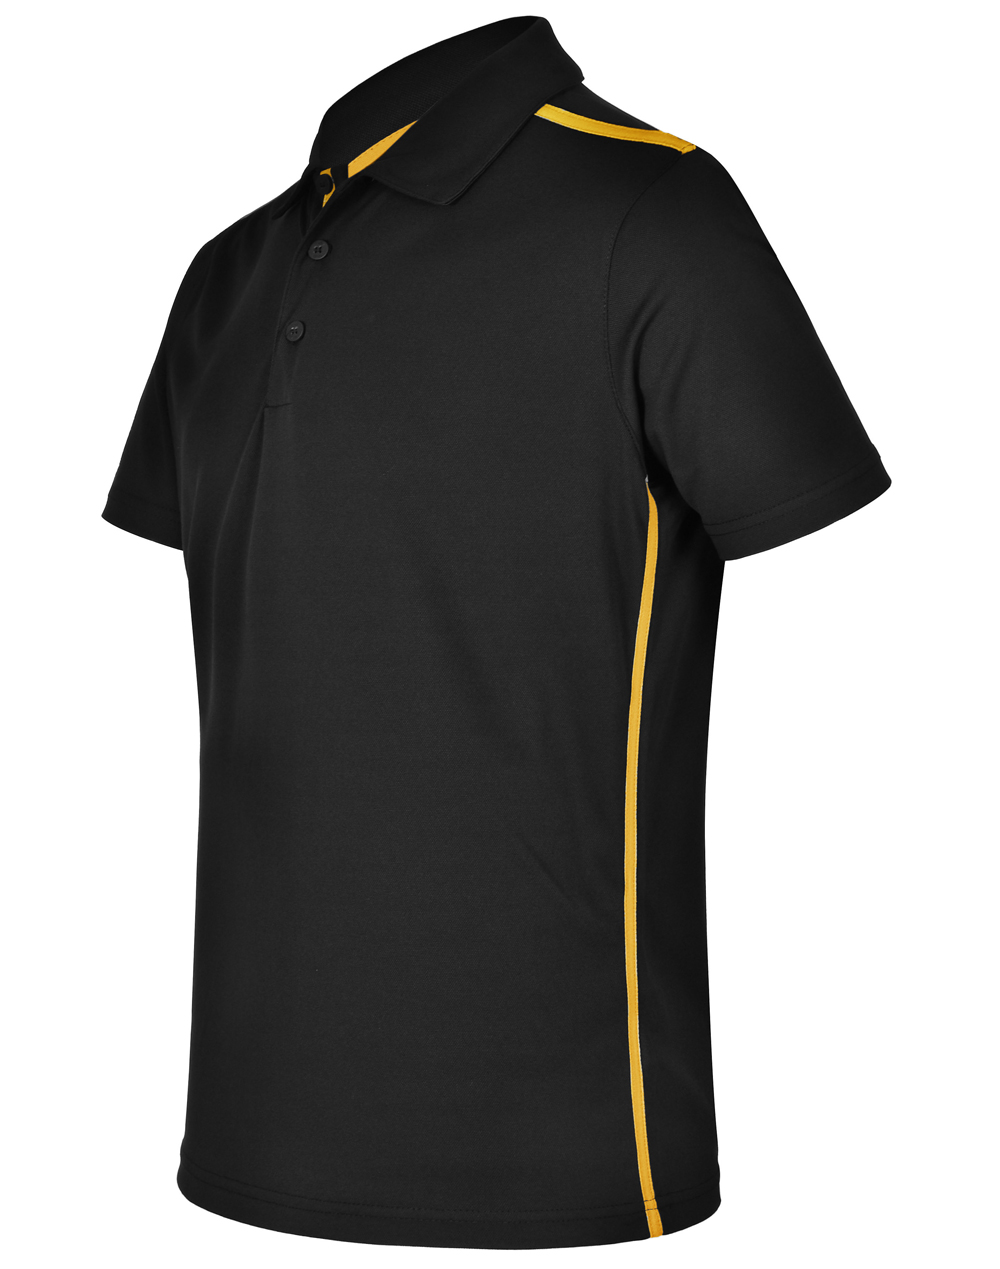 https://s3-ap-southeast-1.amazonaws.com/ws-imgs/POLOSHIRTS/PS83_BlackGold_Side.jpg